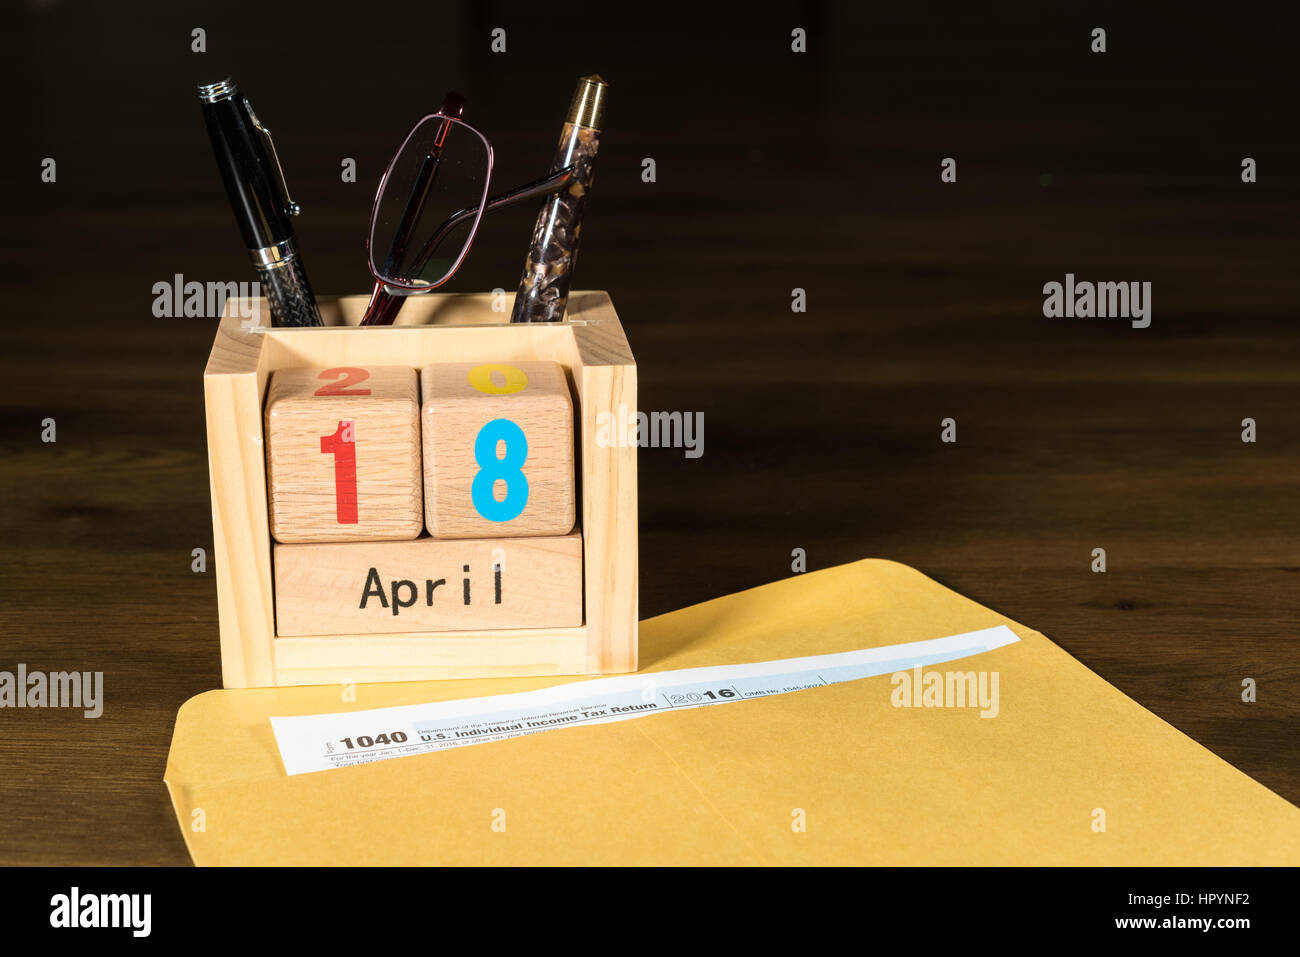 Wooden letters in calendar with Form 1040 income tax for 2016 showing tax day for filing is April 18 2017 Stock Photo